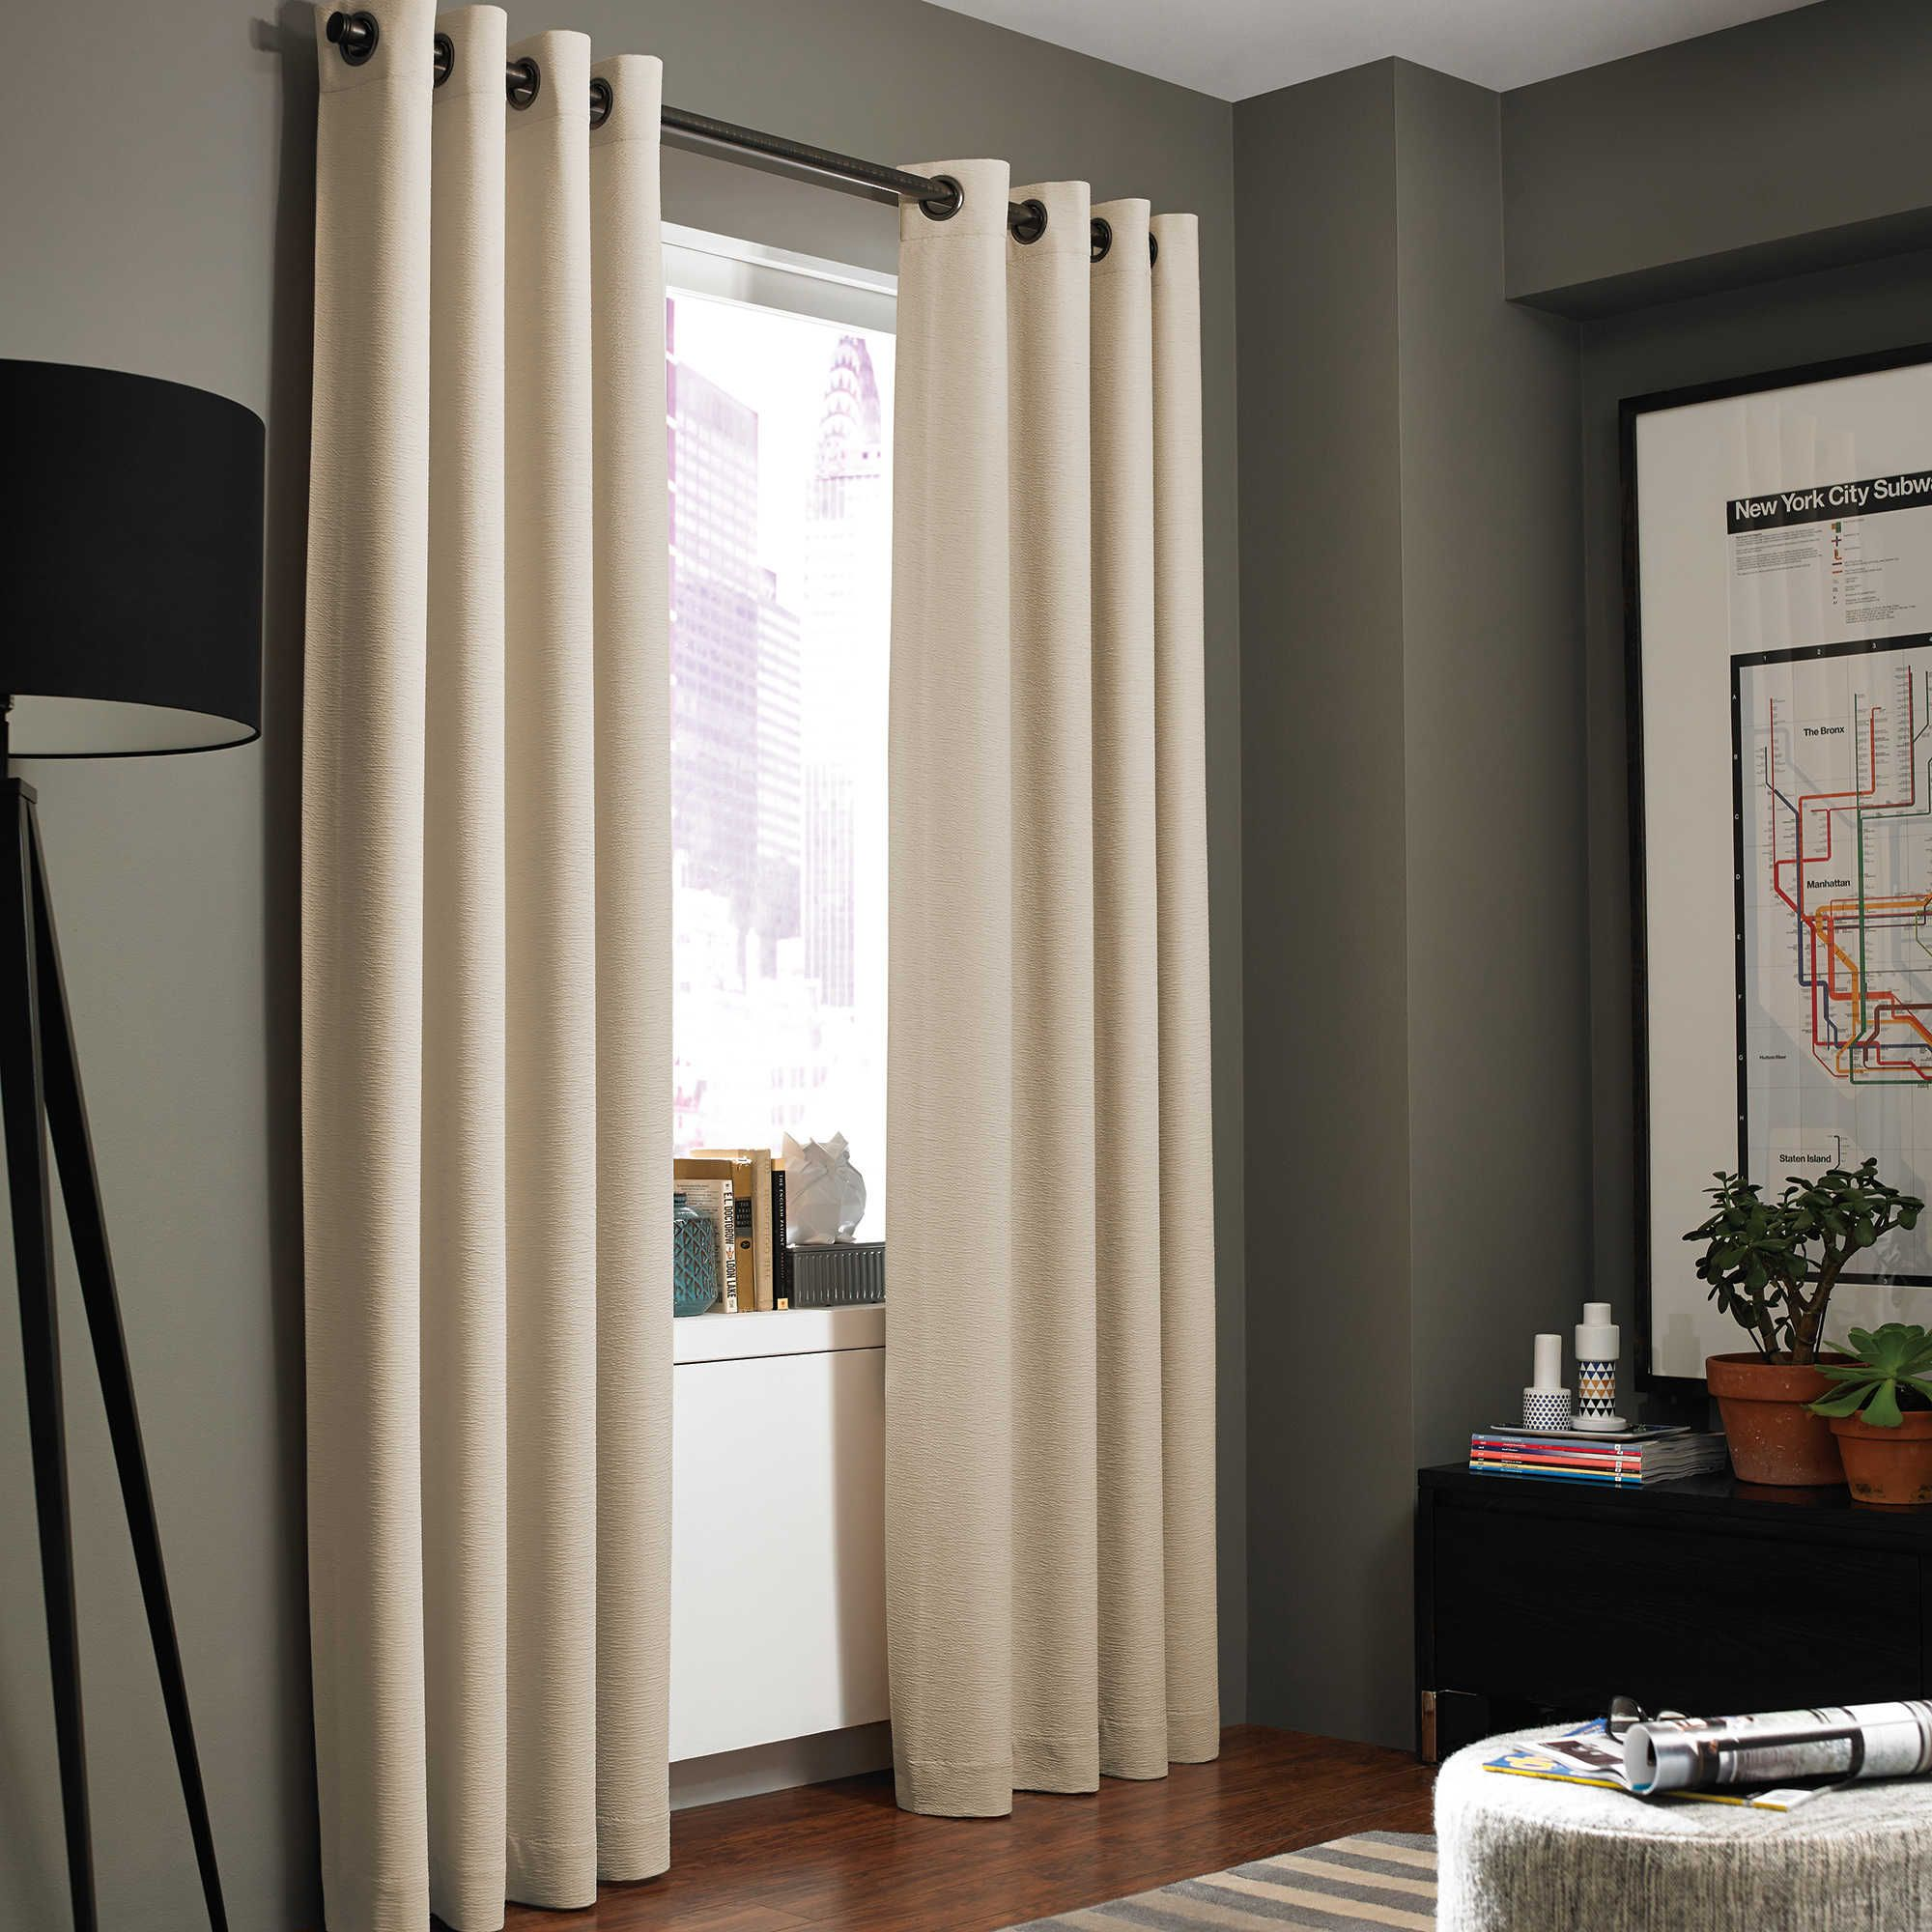 size and grommet curtains gotham reaction kenneth home decorative curtain black cole sleek awesome design full kitchen of the lined fresh texture red unique